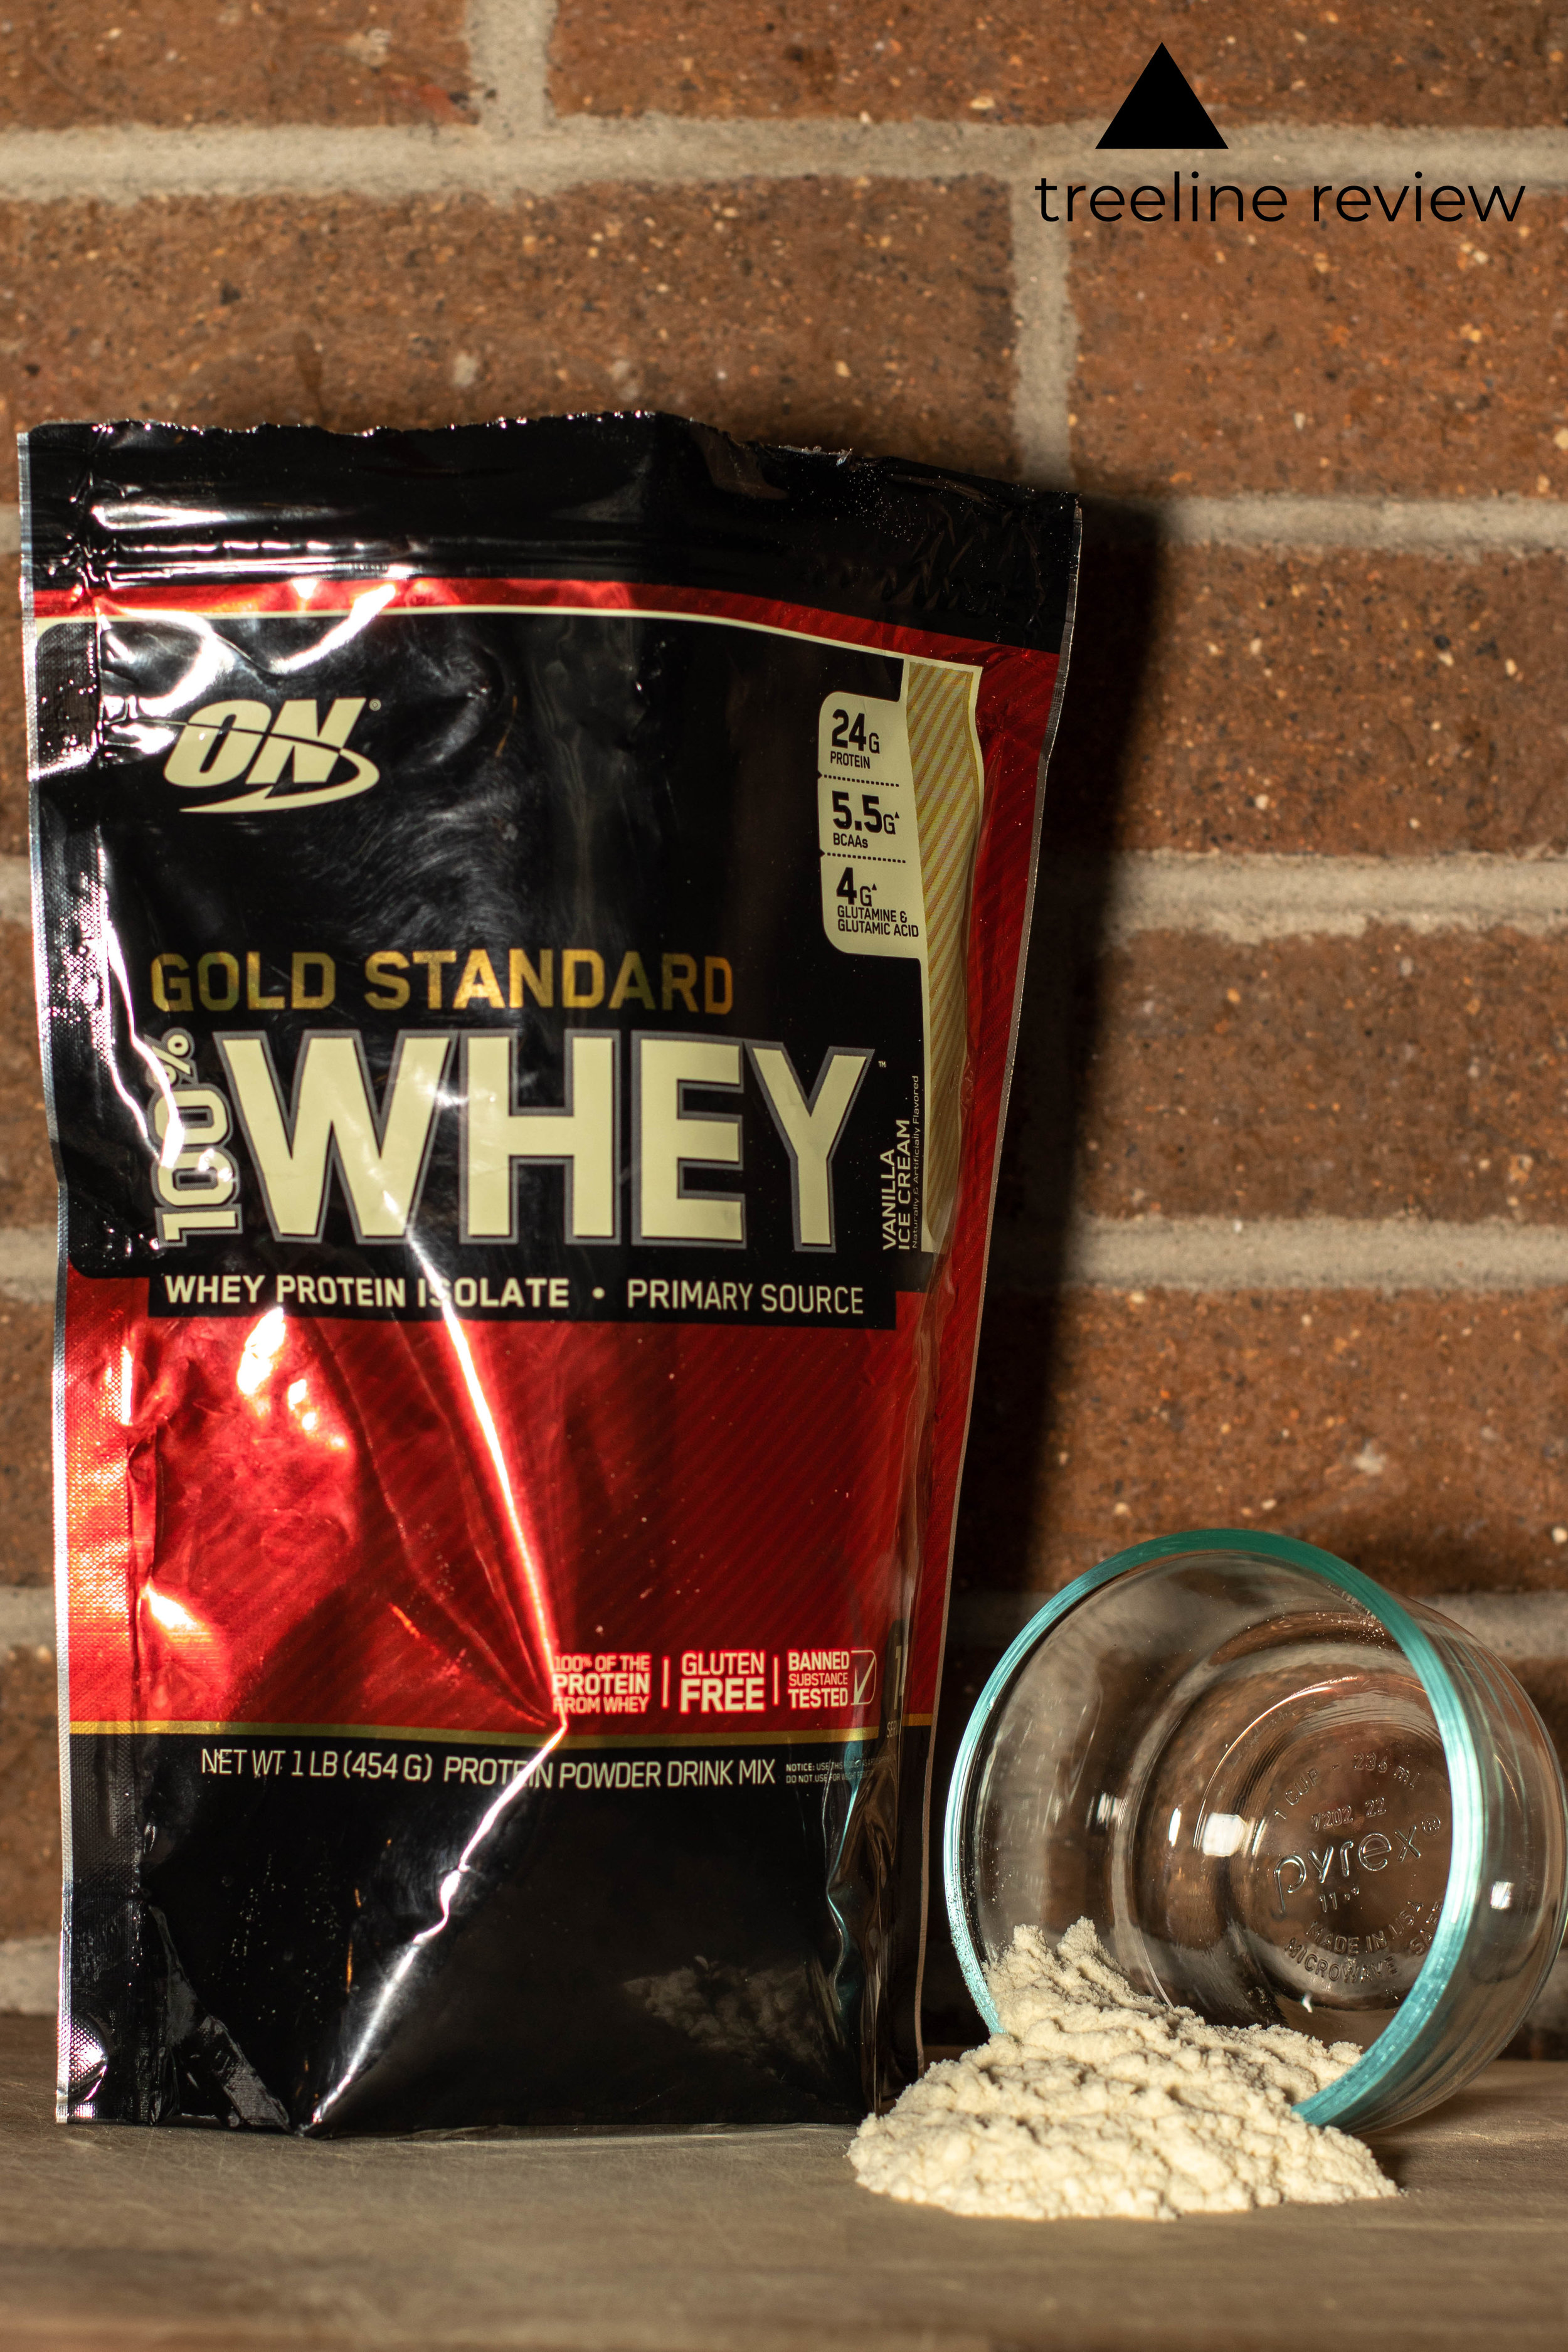 The Best Protein Powder - The Optimum Nutrition Gold Standard 100% Whey offers the best balance of price, taste, and varieties of the protein powders we tested.Read more→